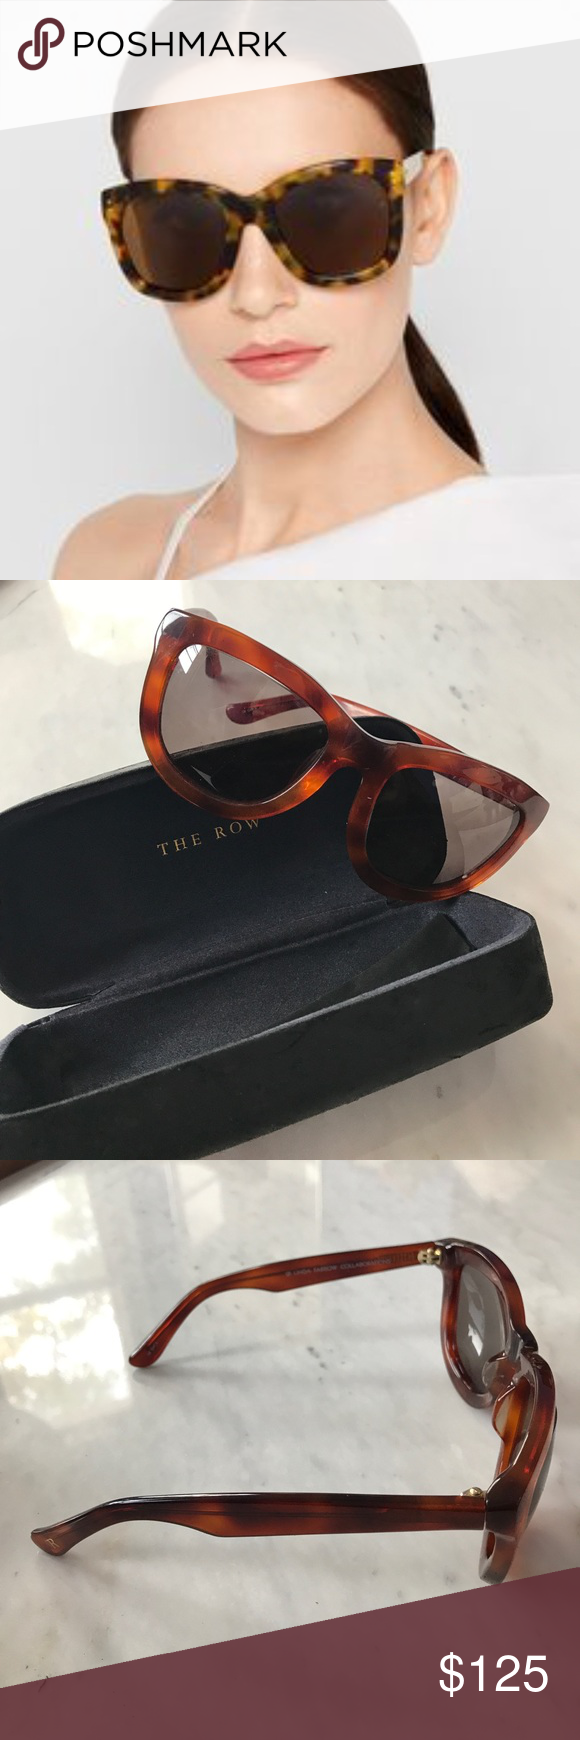 bb1a30a6582 The Row x Linda Farrow Sunglasses Limited edition collection -  collaboration between The Row and Linda Farrow. Gentle loved but no  scratches or signs of ...